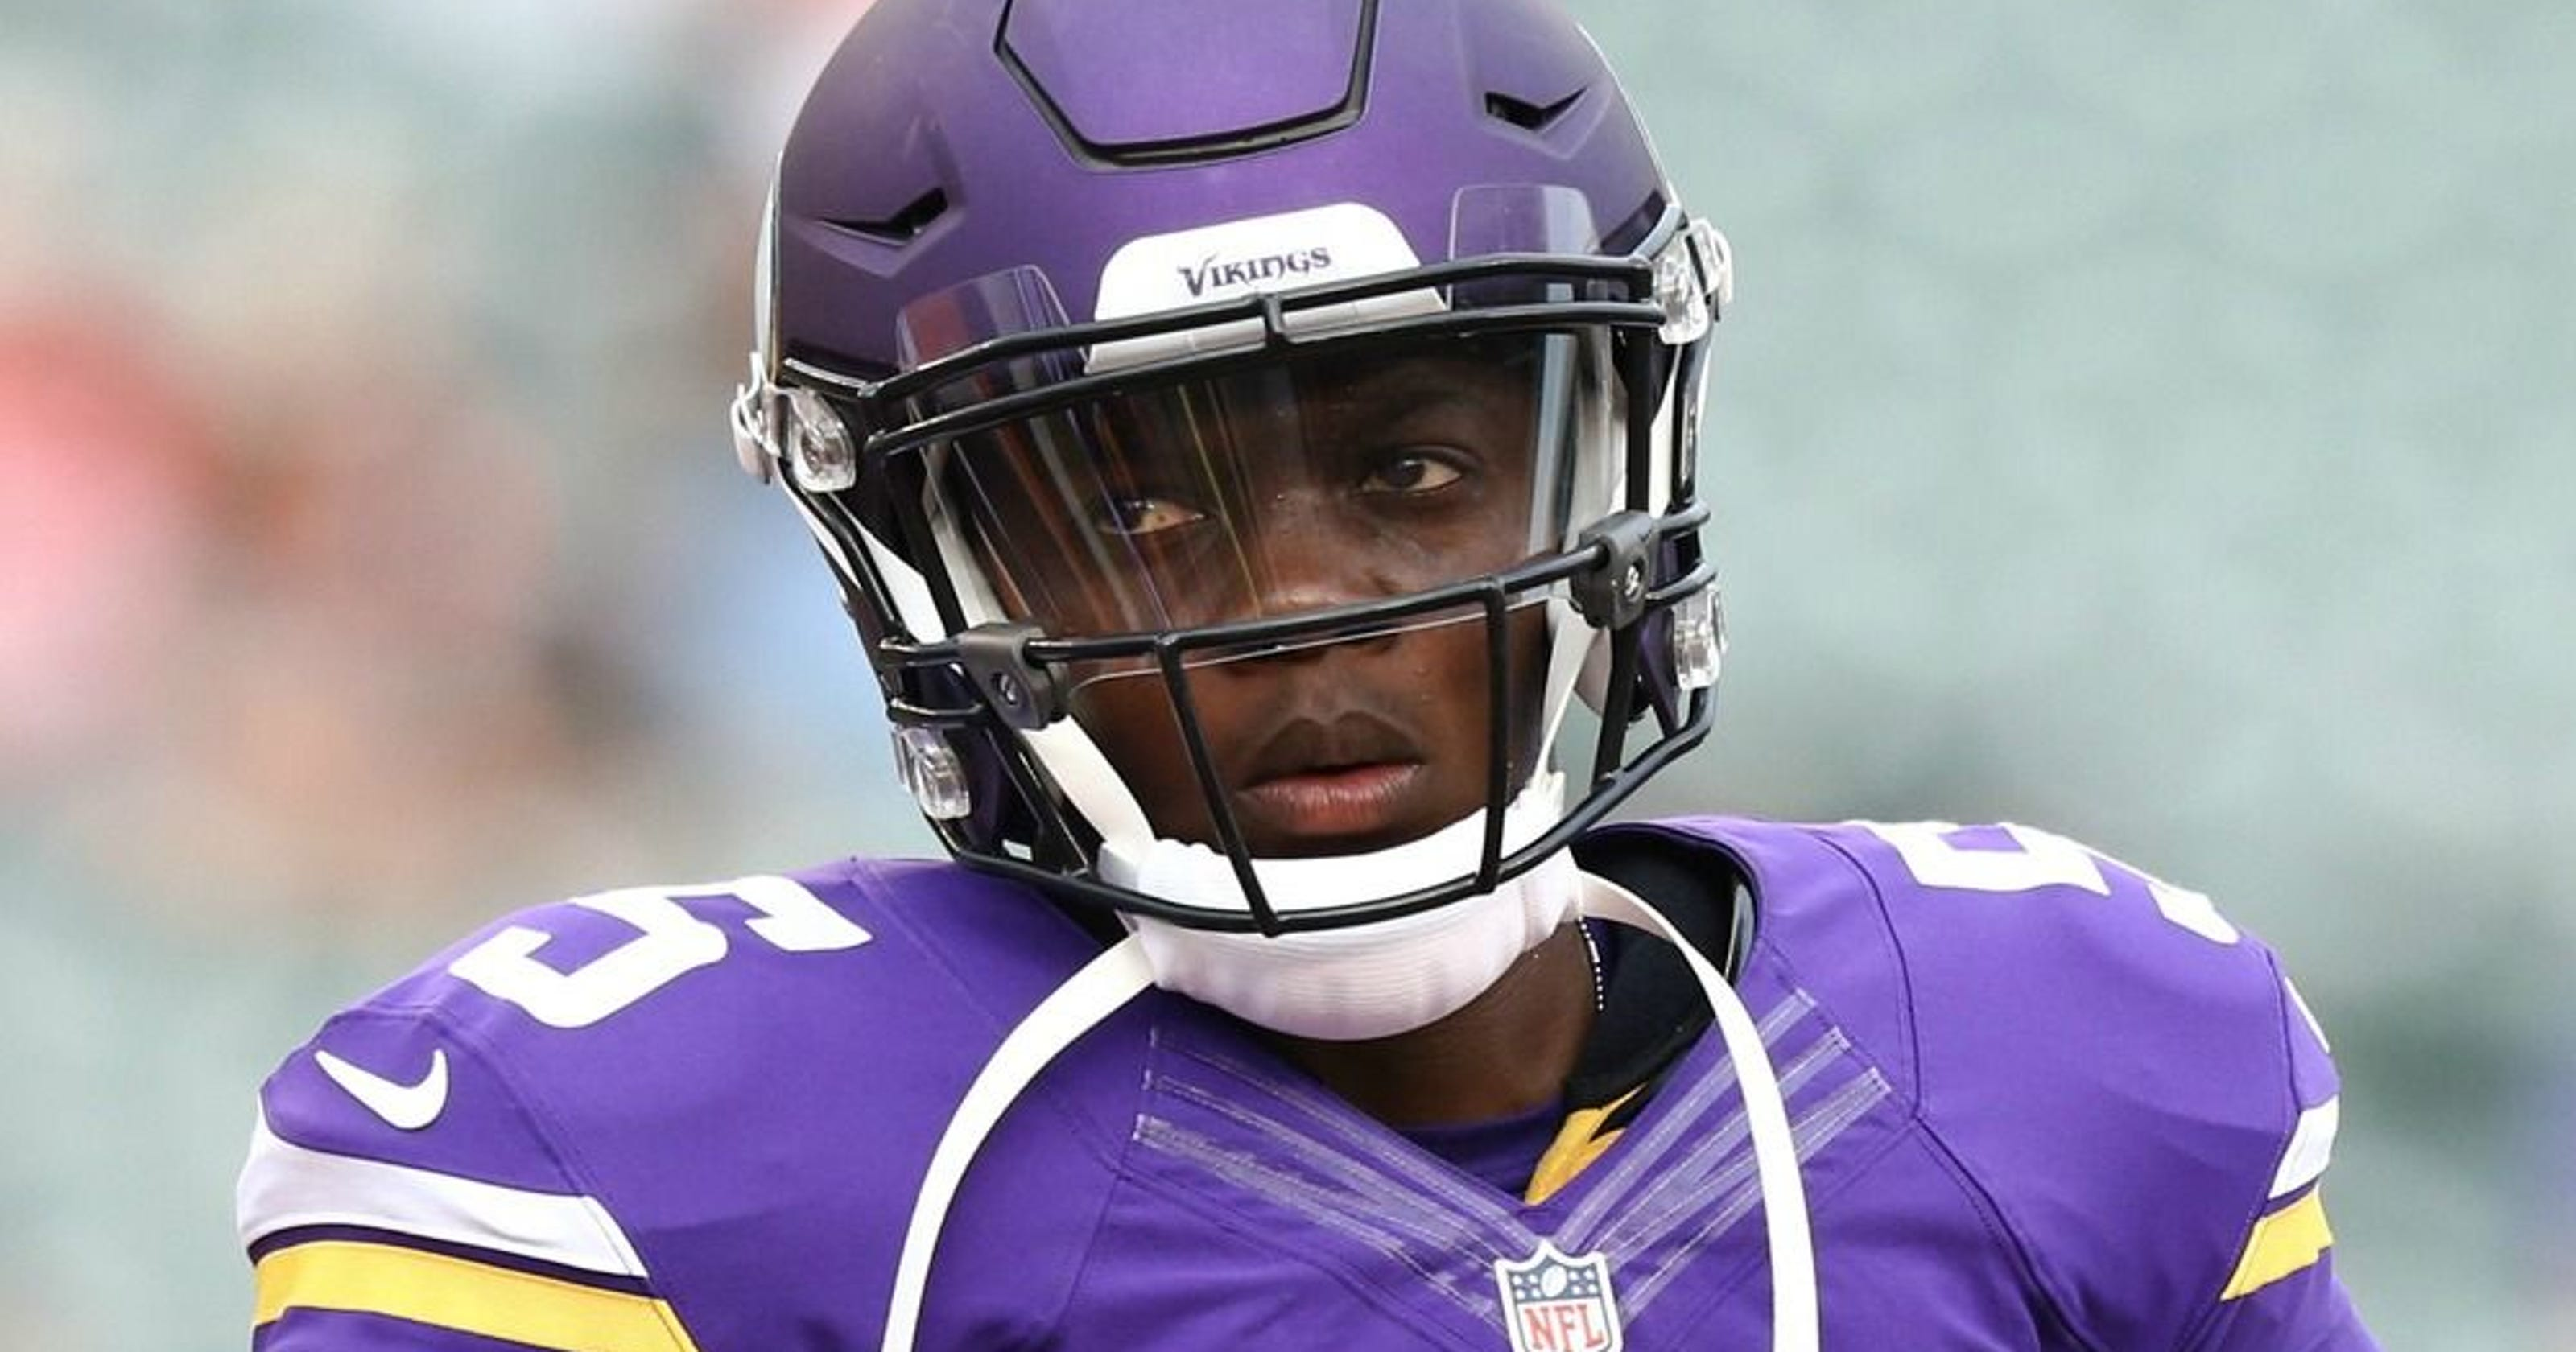 100% authentic f32bb a2371 NY Jets to sign Teddy Bridgewater, re-sign Josh McCown